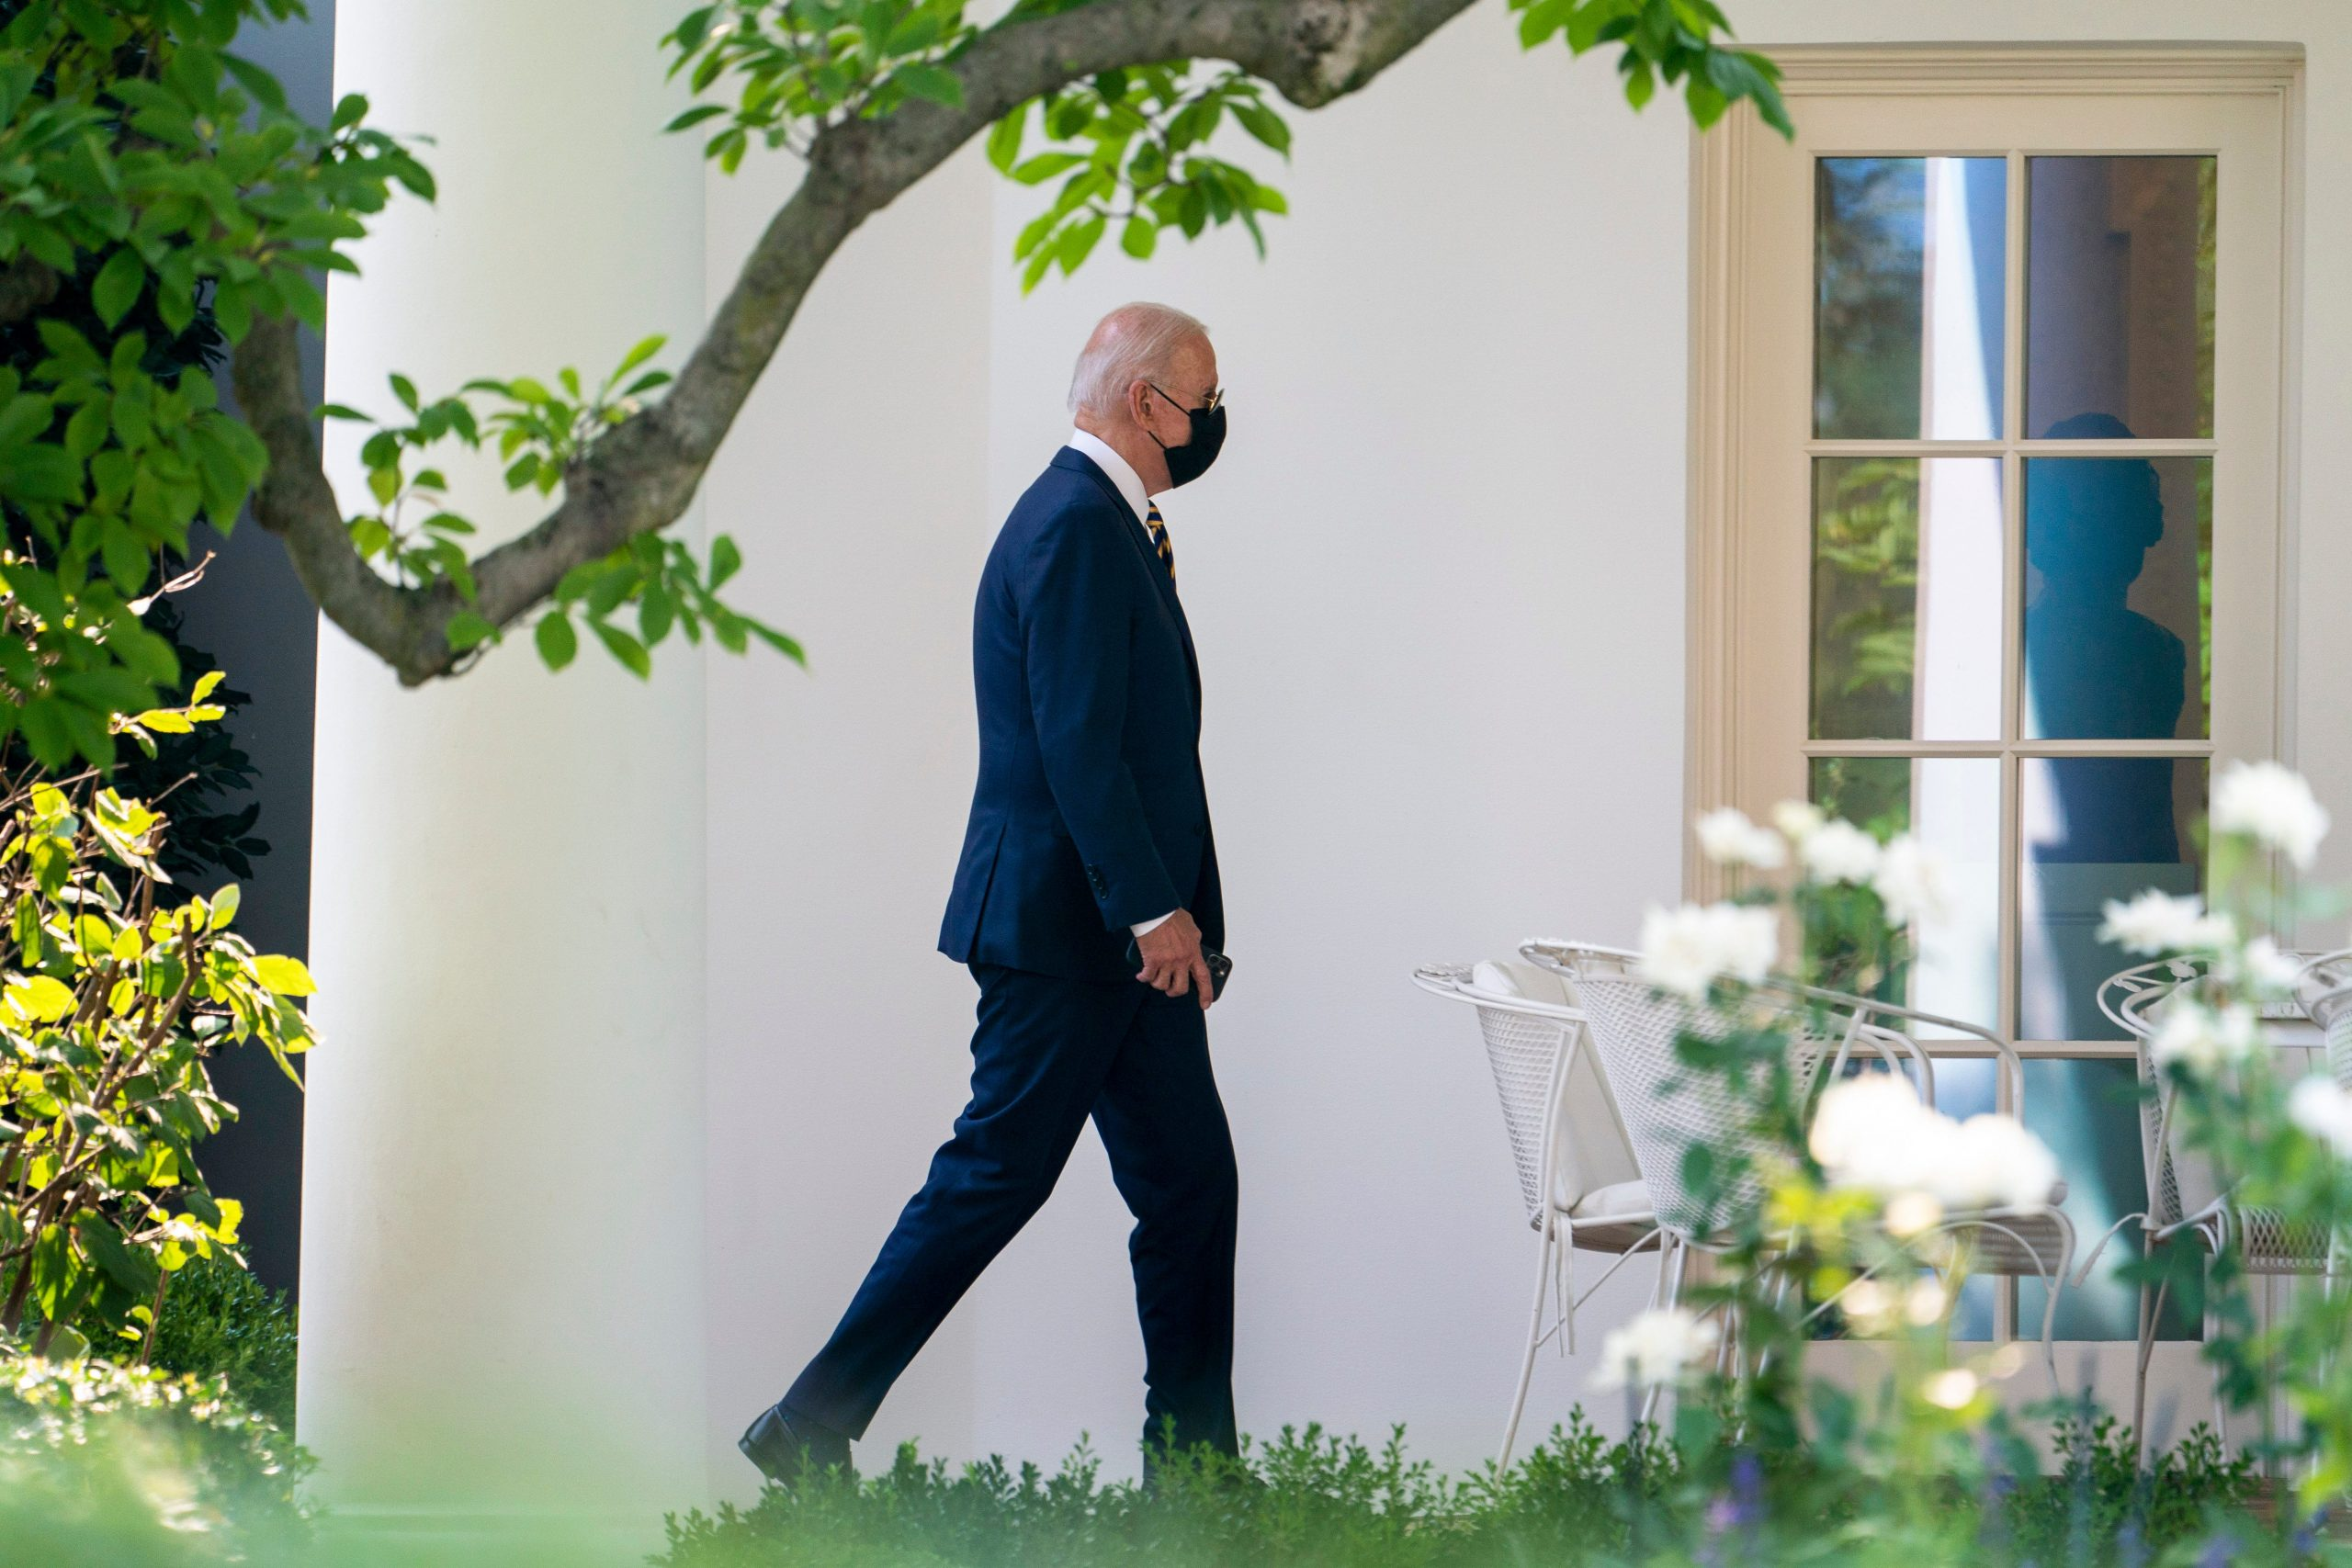 Biden asks cities and states to send $100 to newly vaccinated, requires federal workers to show proof of vaccination